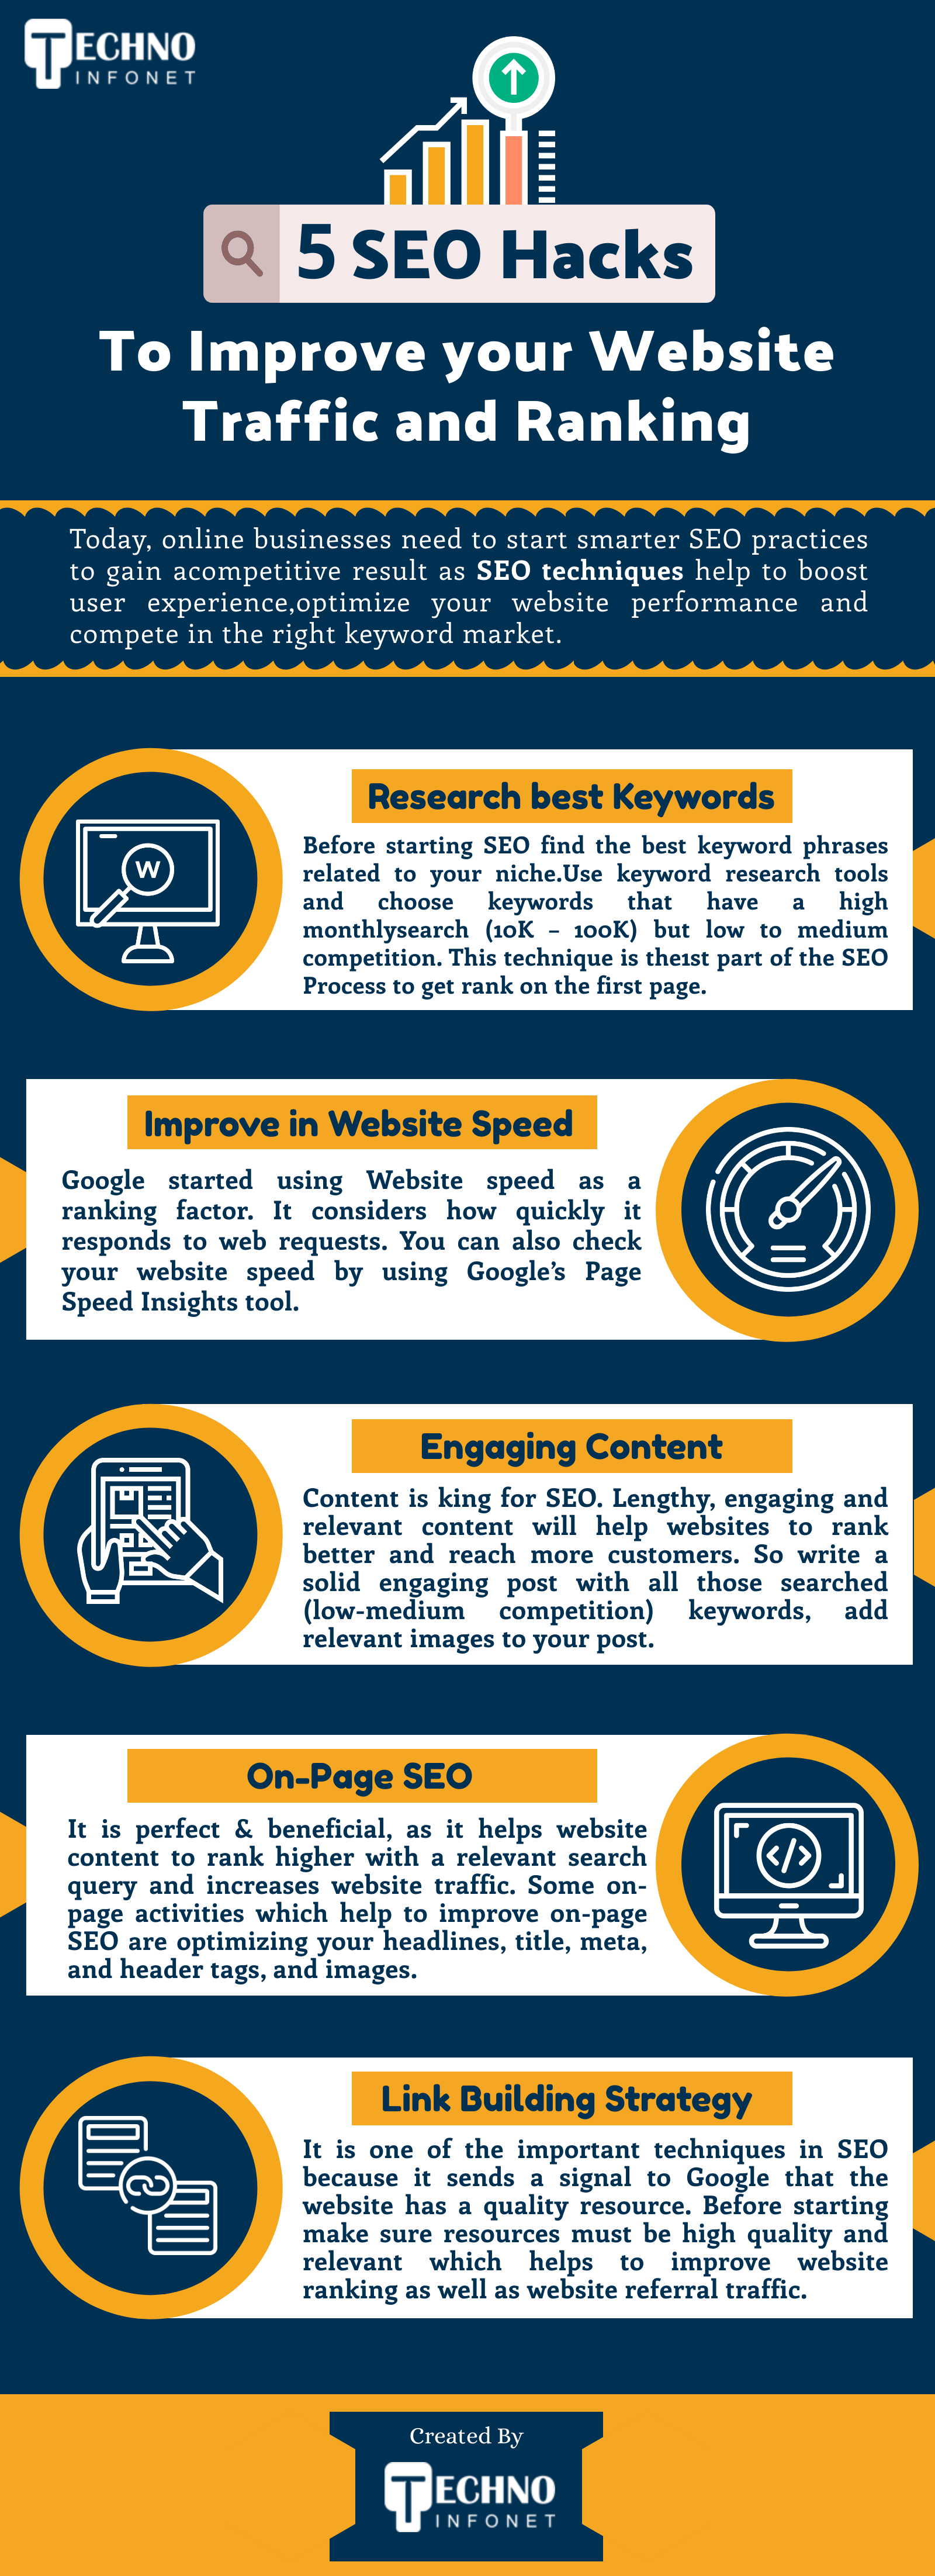 5 SEO hacks to improve your website traffic and ranking